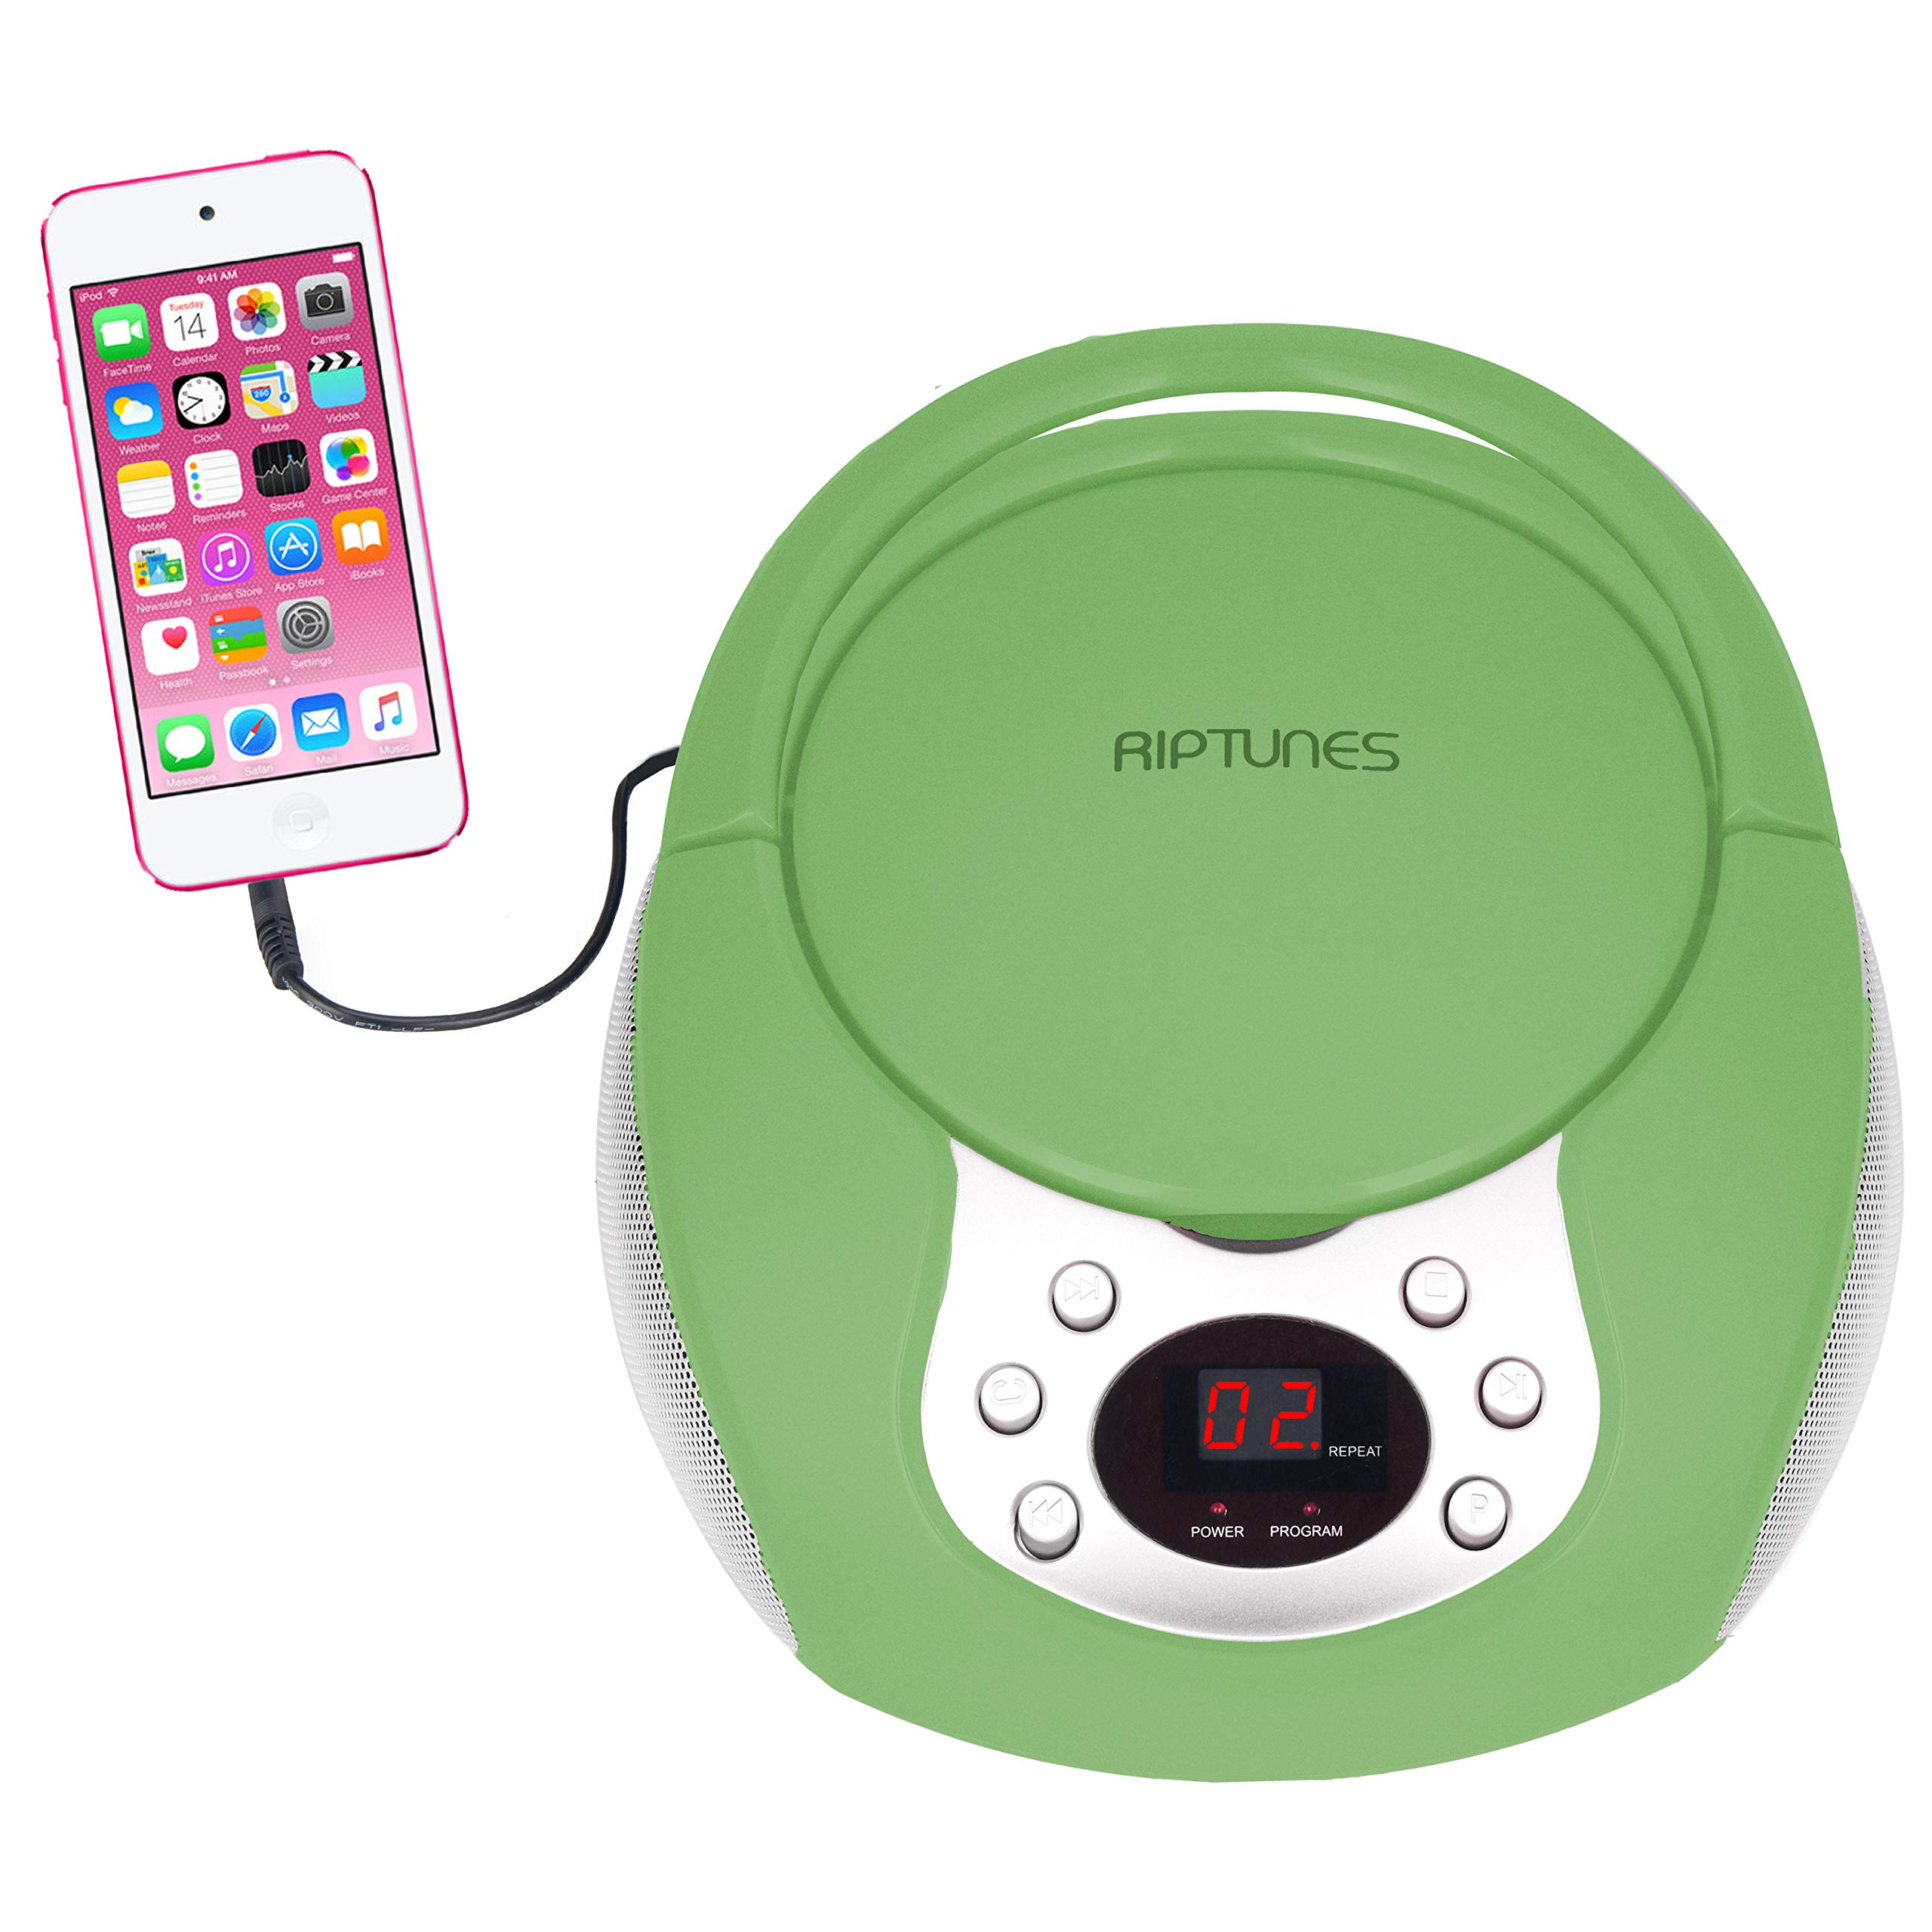 Riptunes Portable CD Player with AM FM Radio Potable radios Boom Box with Aux Line-in, Green